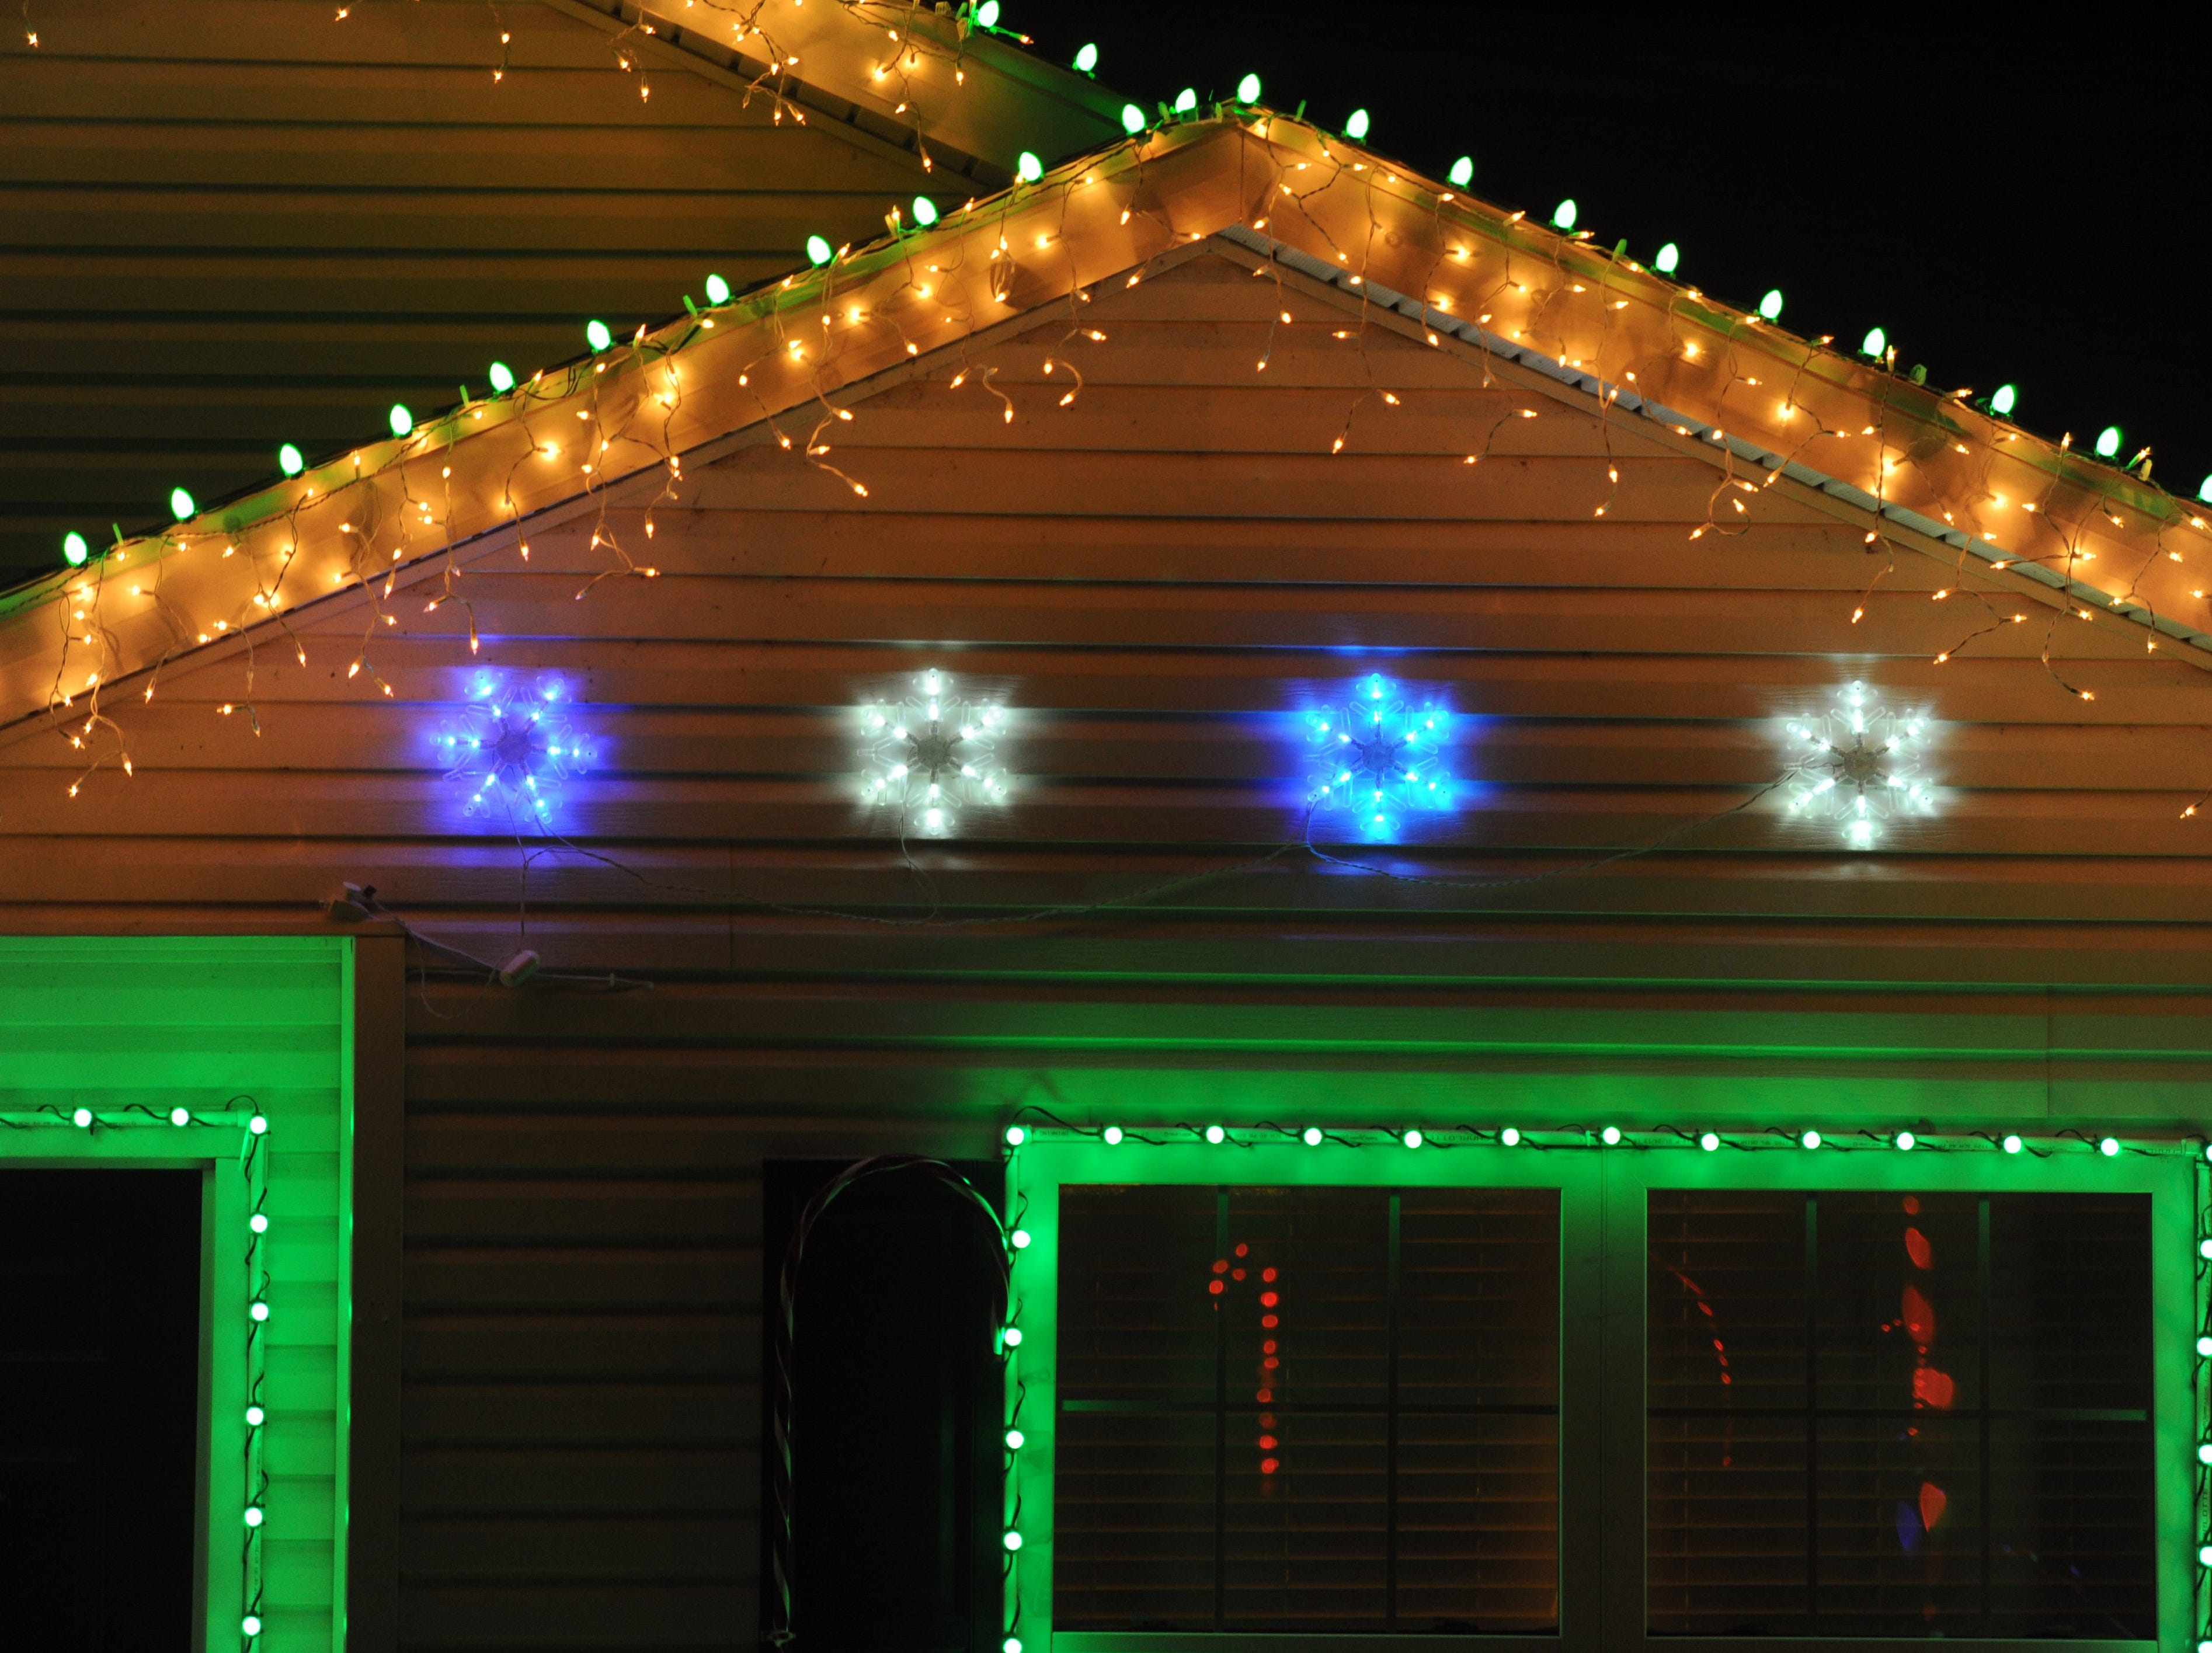 Bobby Wilcox is using RGB LED lights and he can change the color of each bulb as he desires, allowing the same strand of lights to be multiple colors in his  light show set to music for Christmas at his home at 6900 Boston Drive in Newburgh, Ind. As seen on Monday, Dec. 16, 2013, Wilcox said he is already planning his Christmas display for 2014.